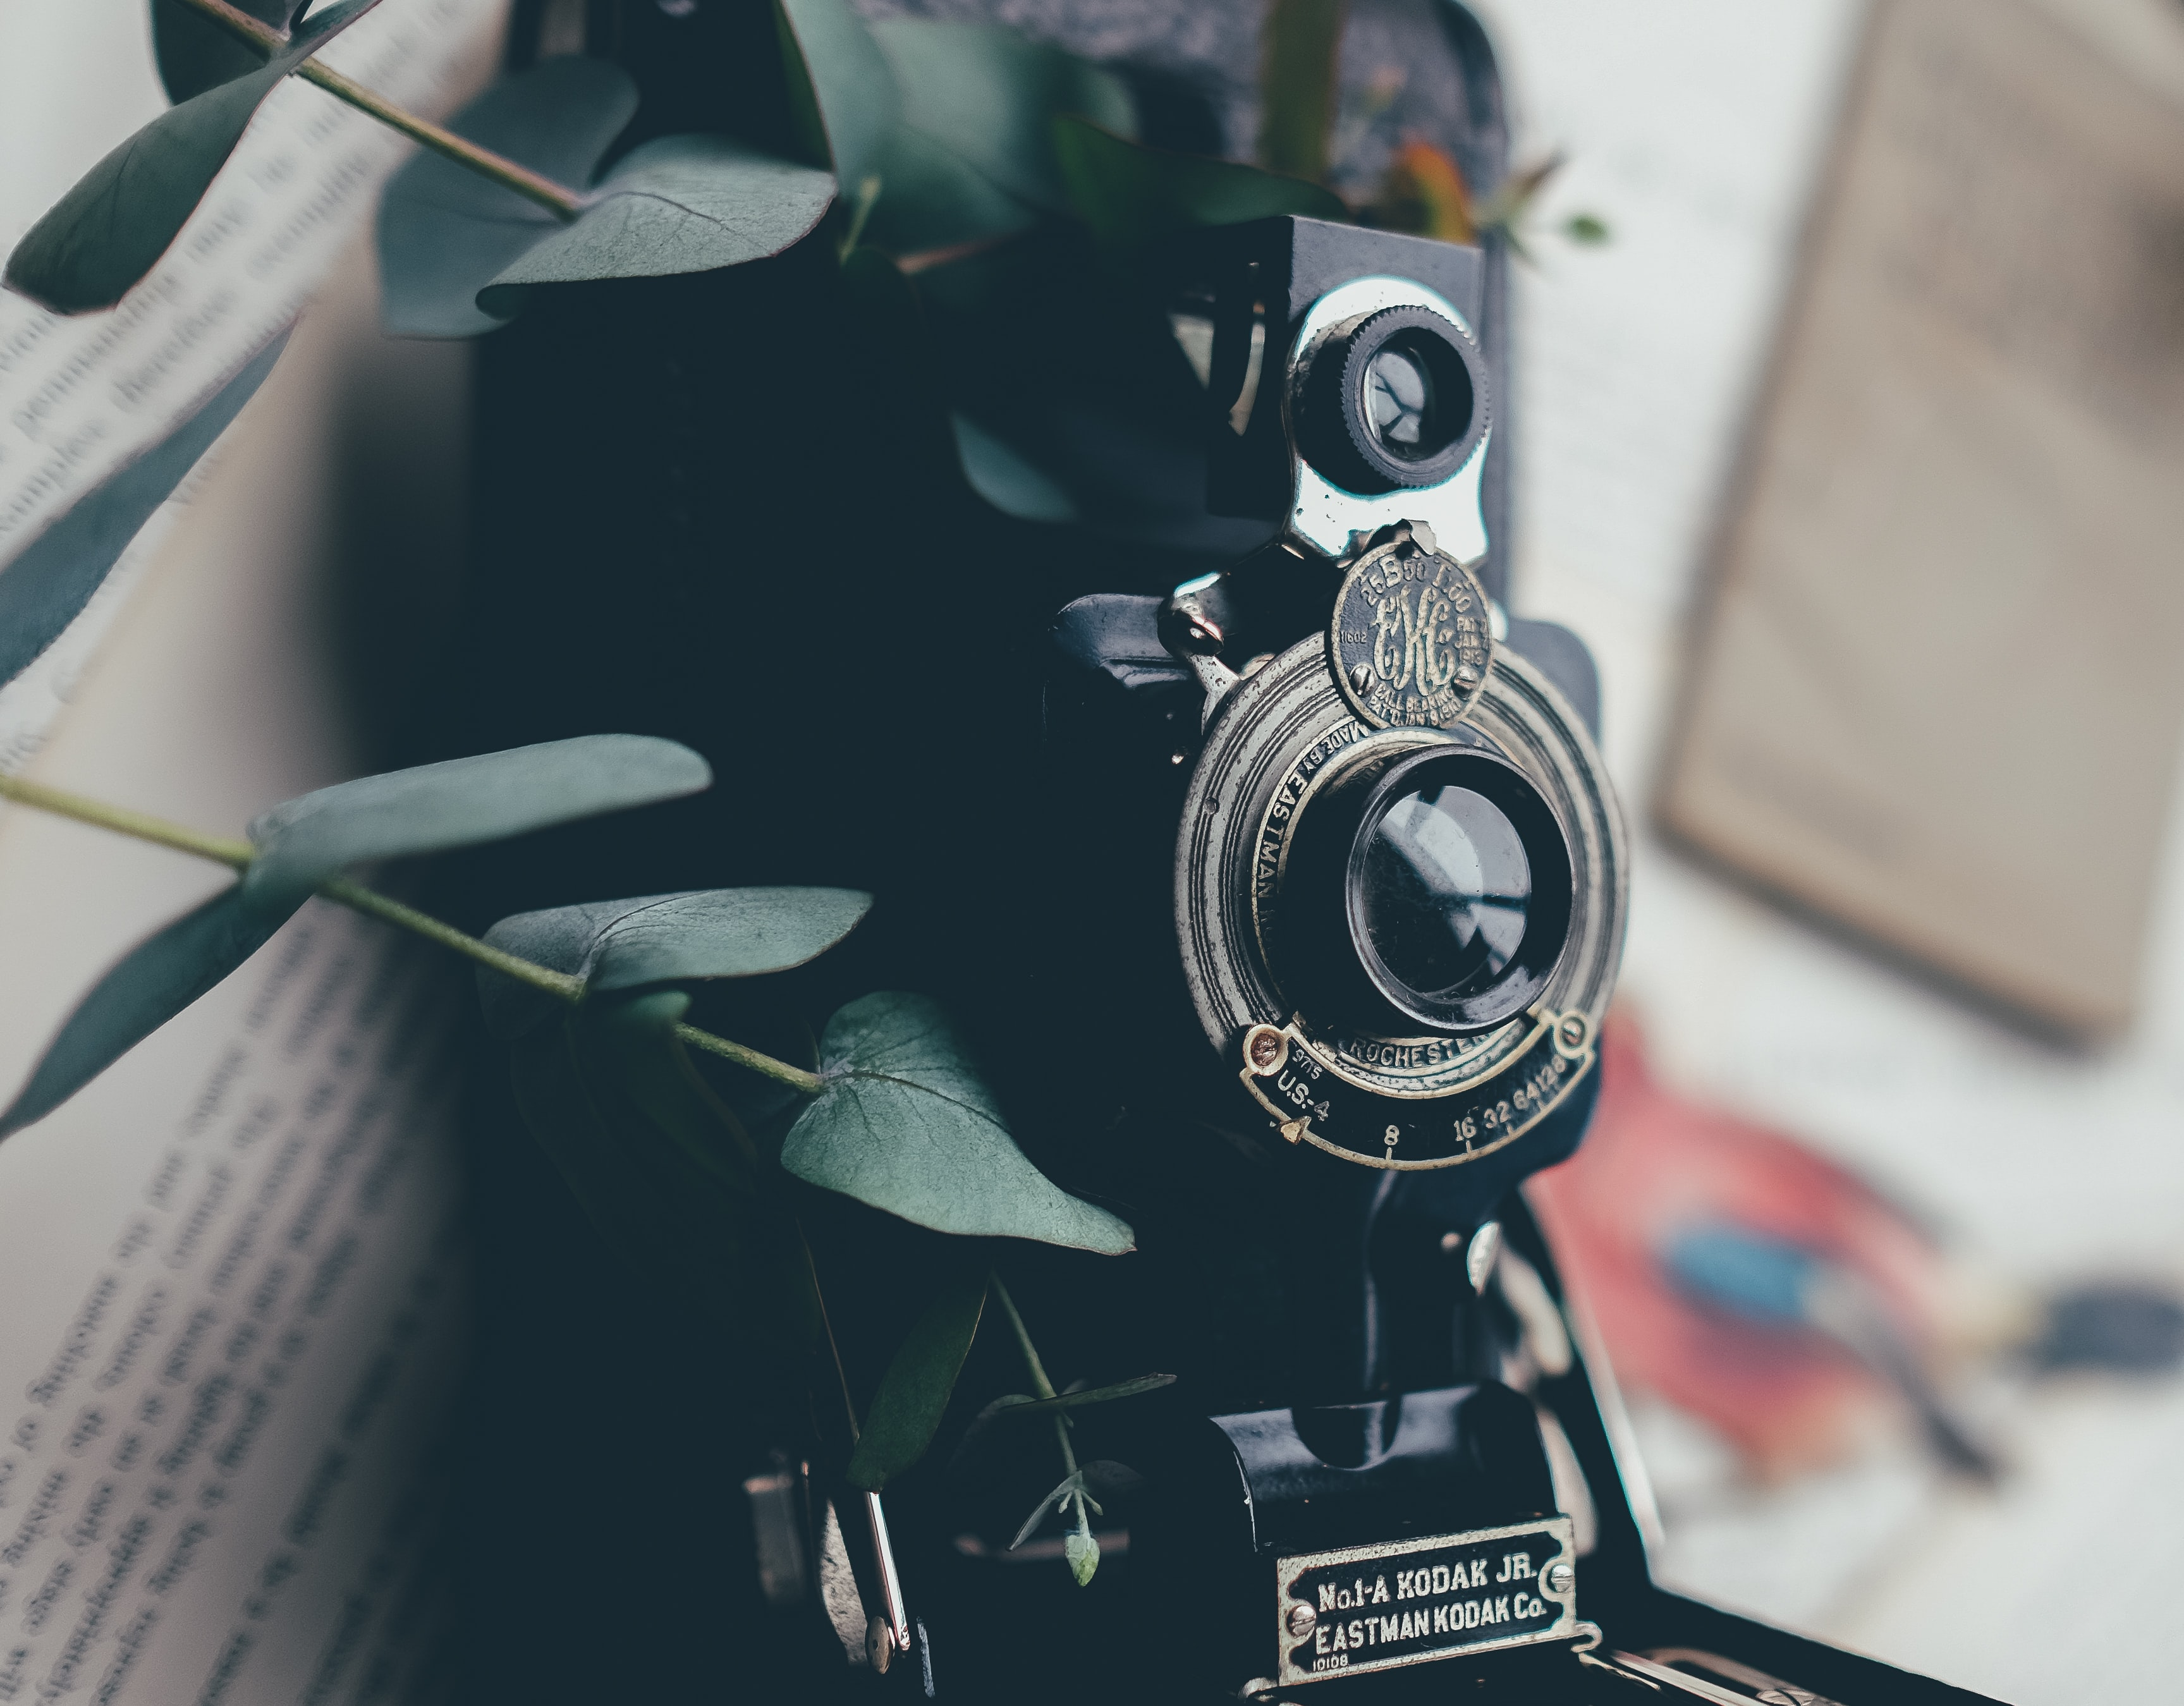 A vintage Kodak camera surrounded by leaves resting on a book